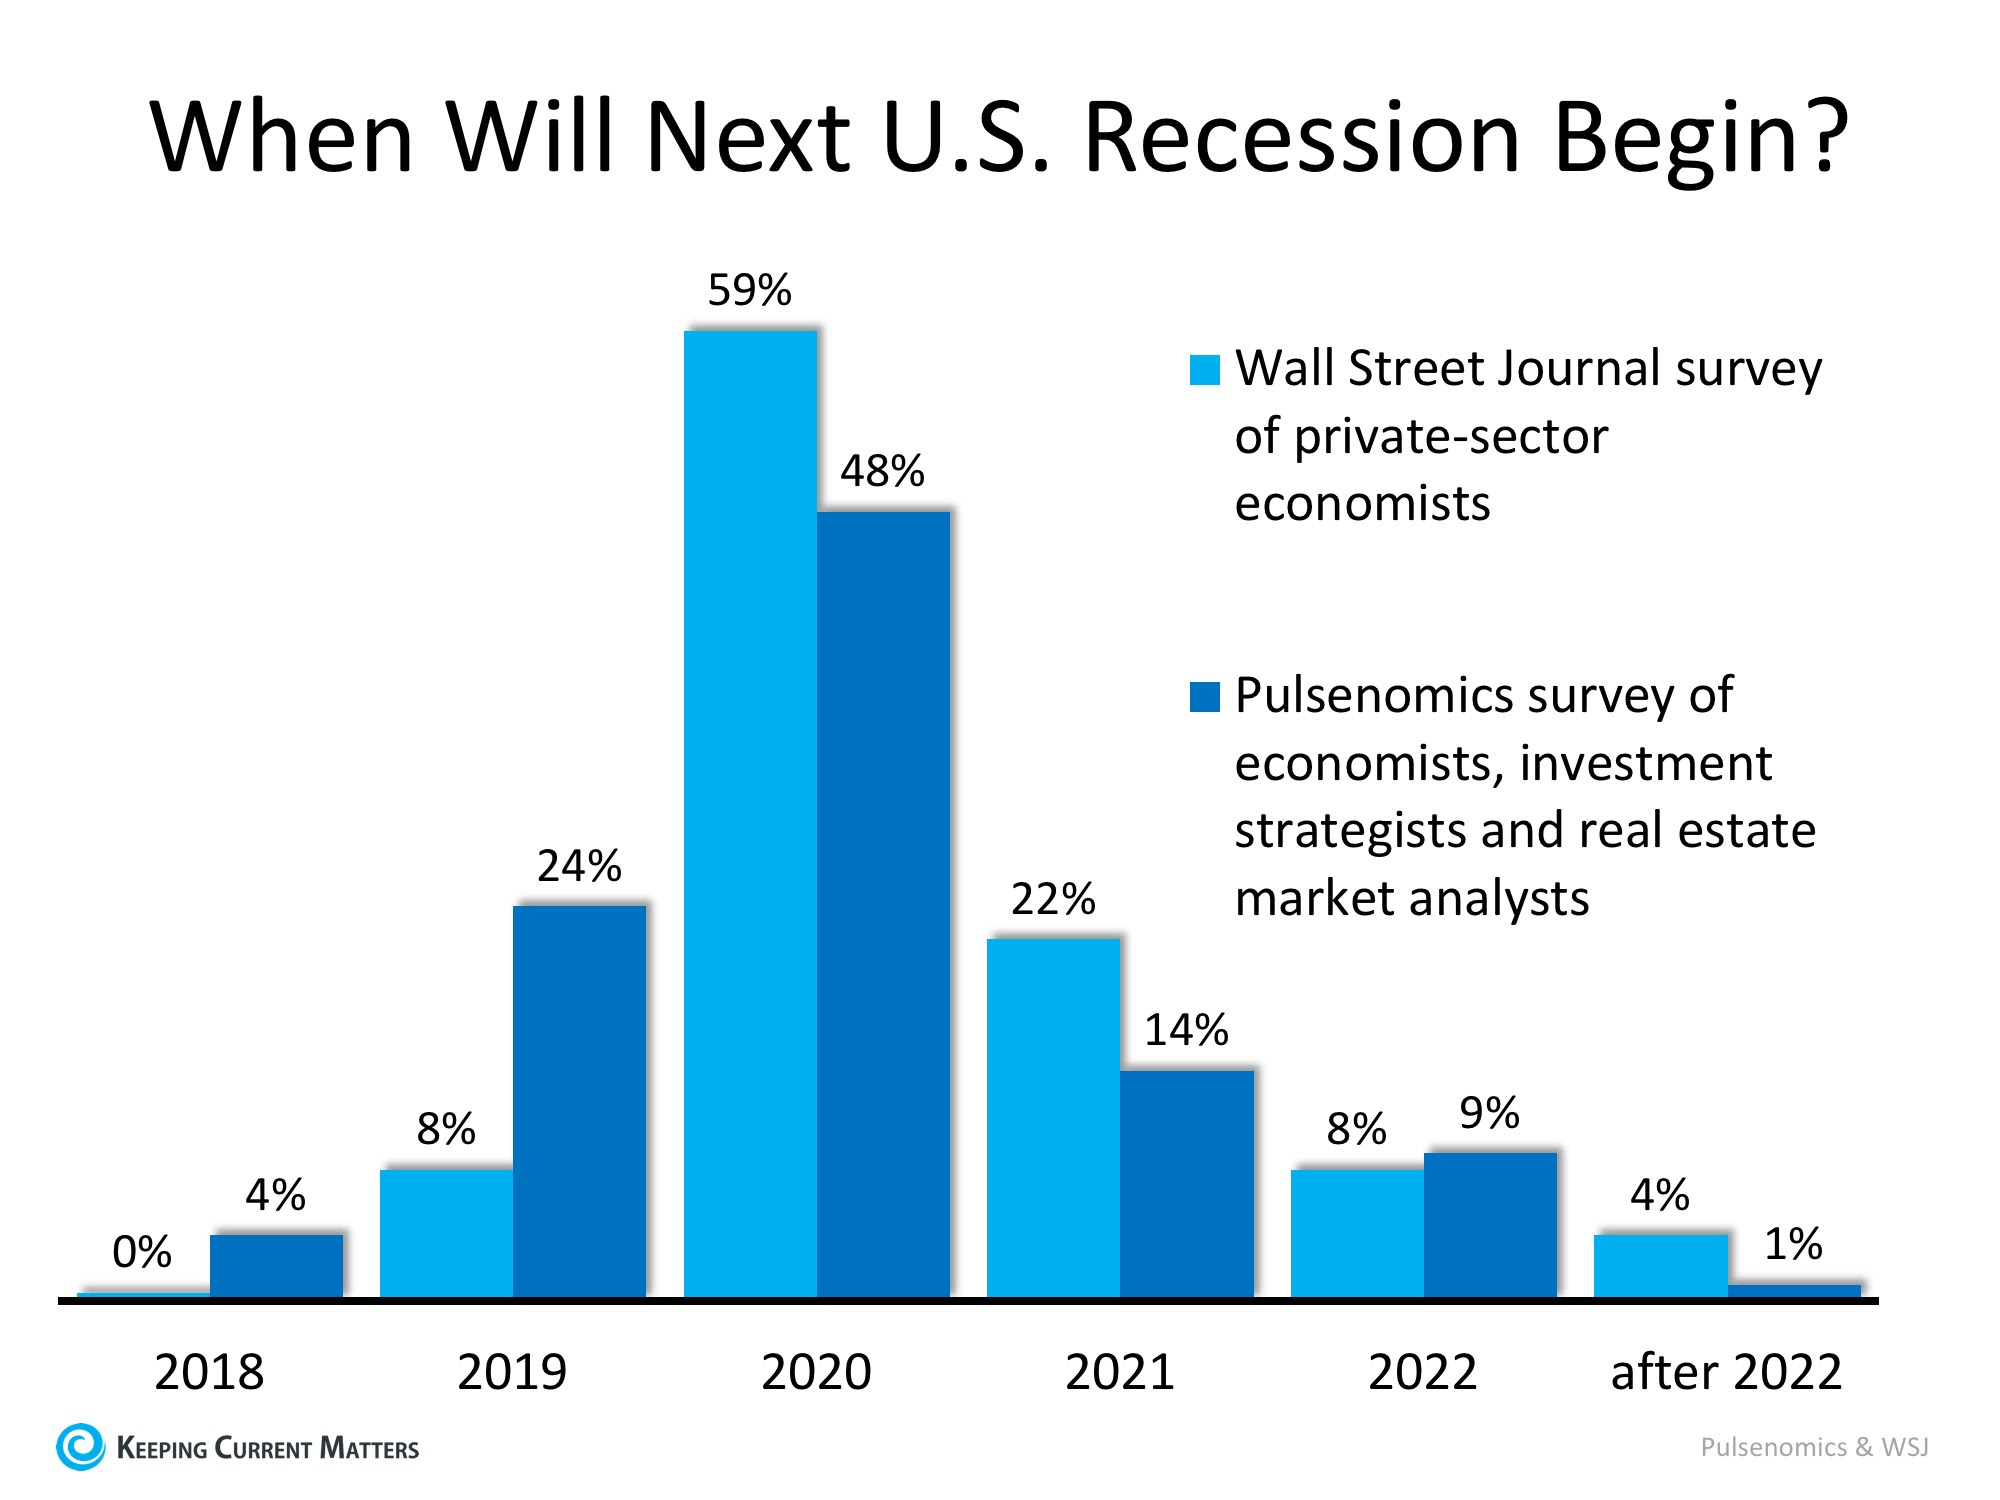 Next Recession in 2020? What Will Be the Impact? | Keeping Current Matters